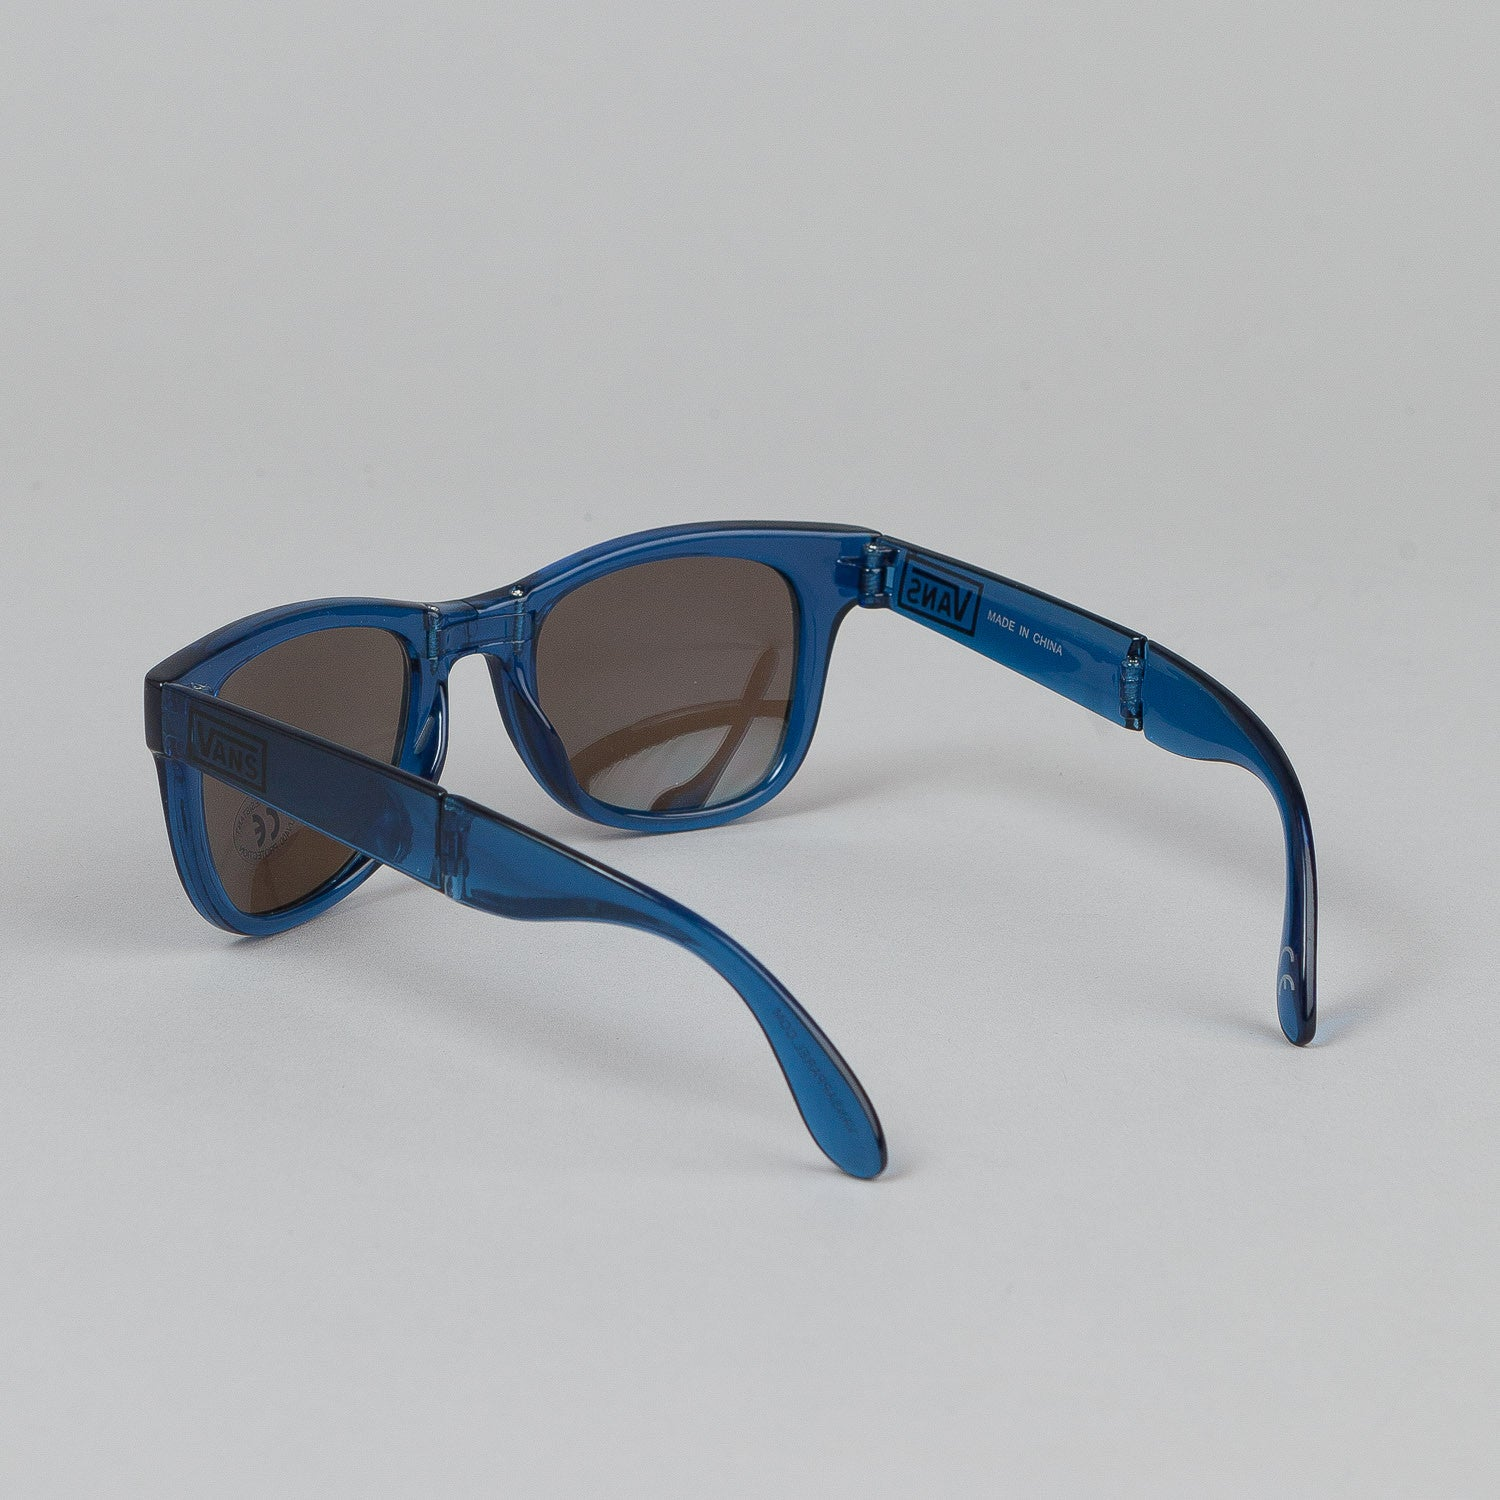 Vans Folding Spicoli Sunglasses - Transparent Classic Blue